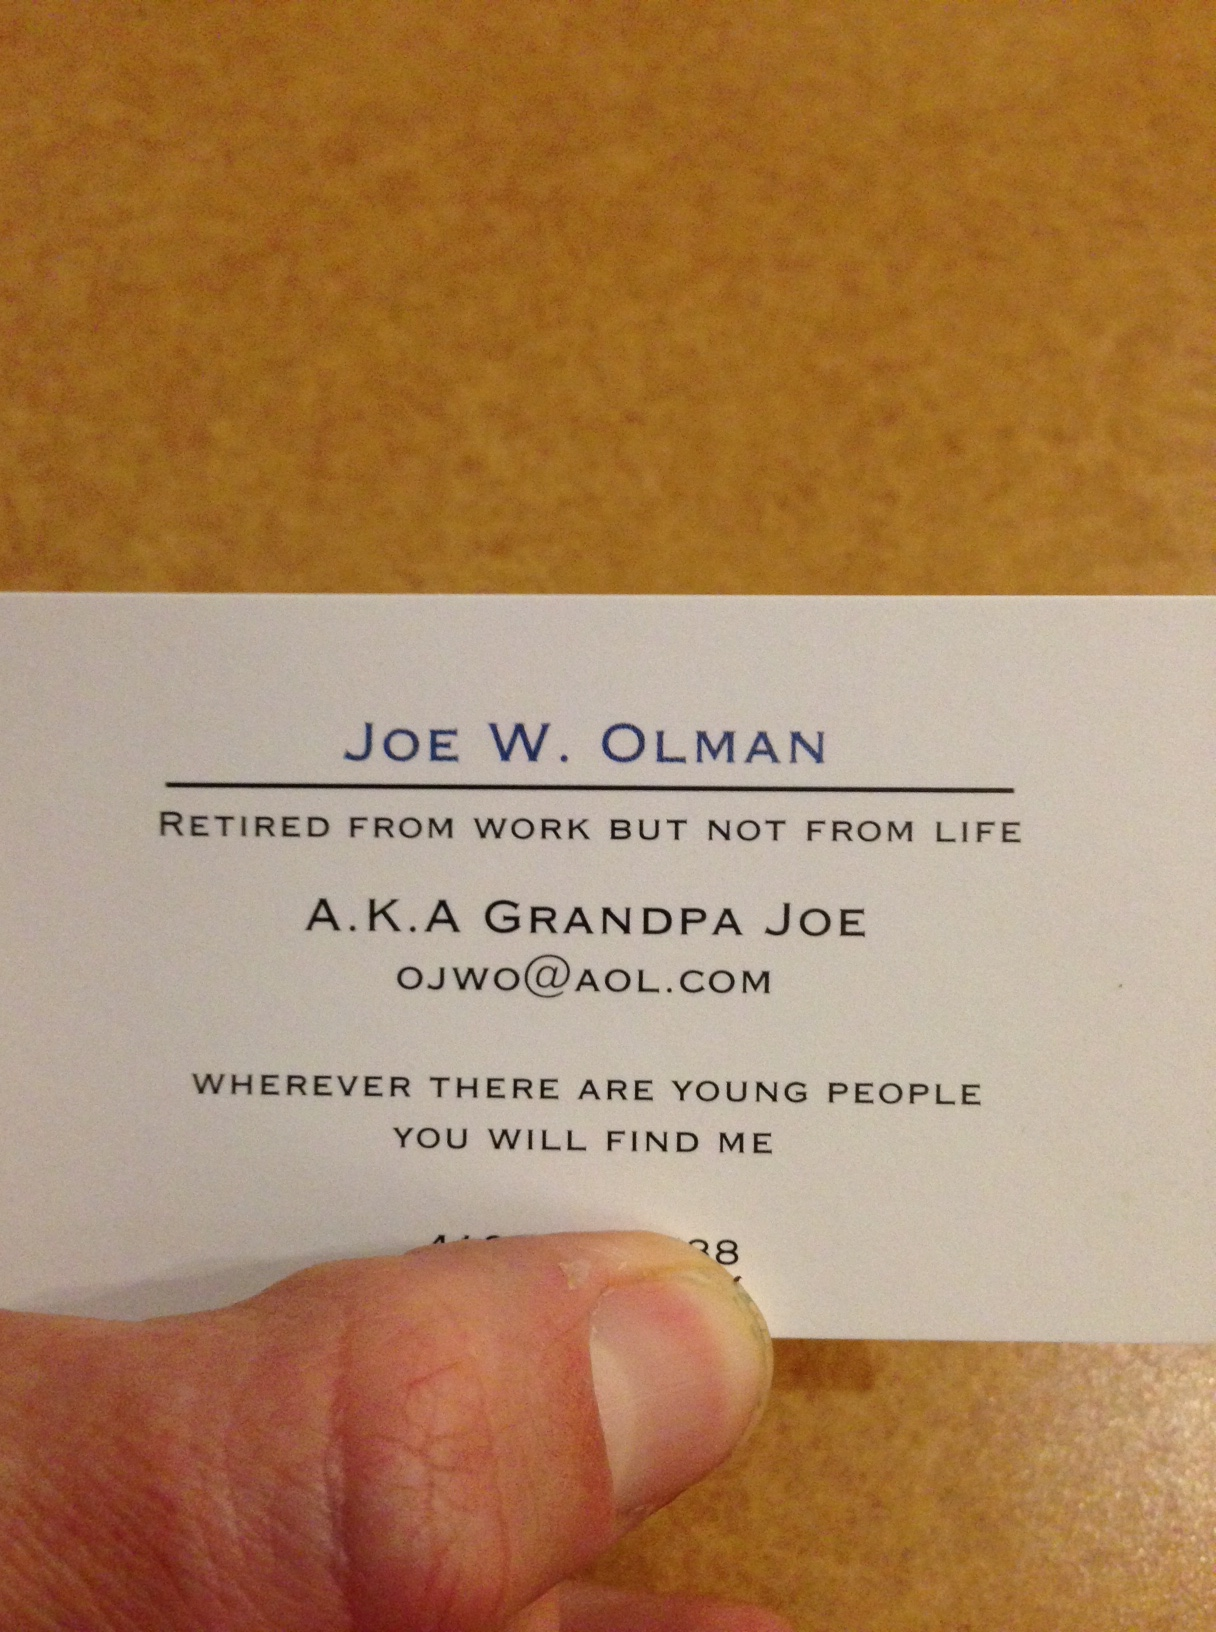 Business Cards For Retired People - Best Business Card Design and ...